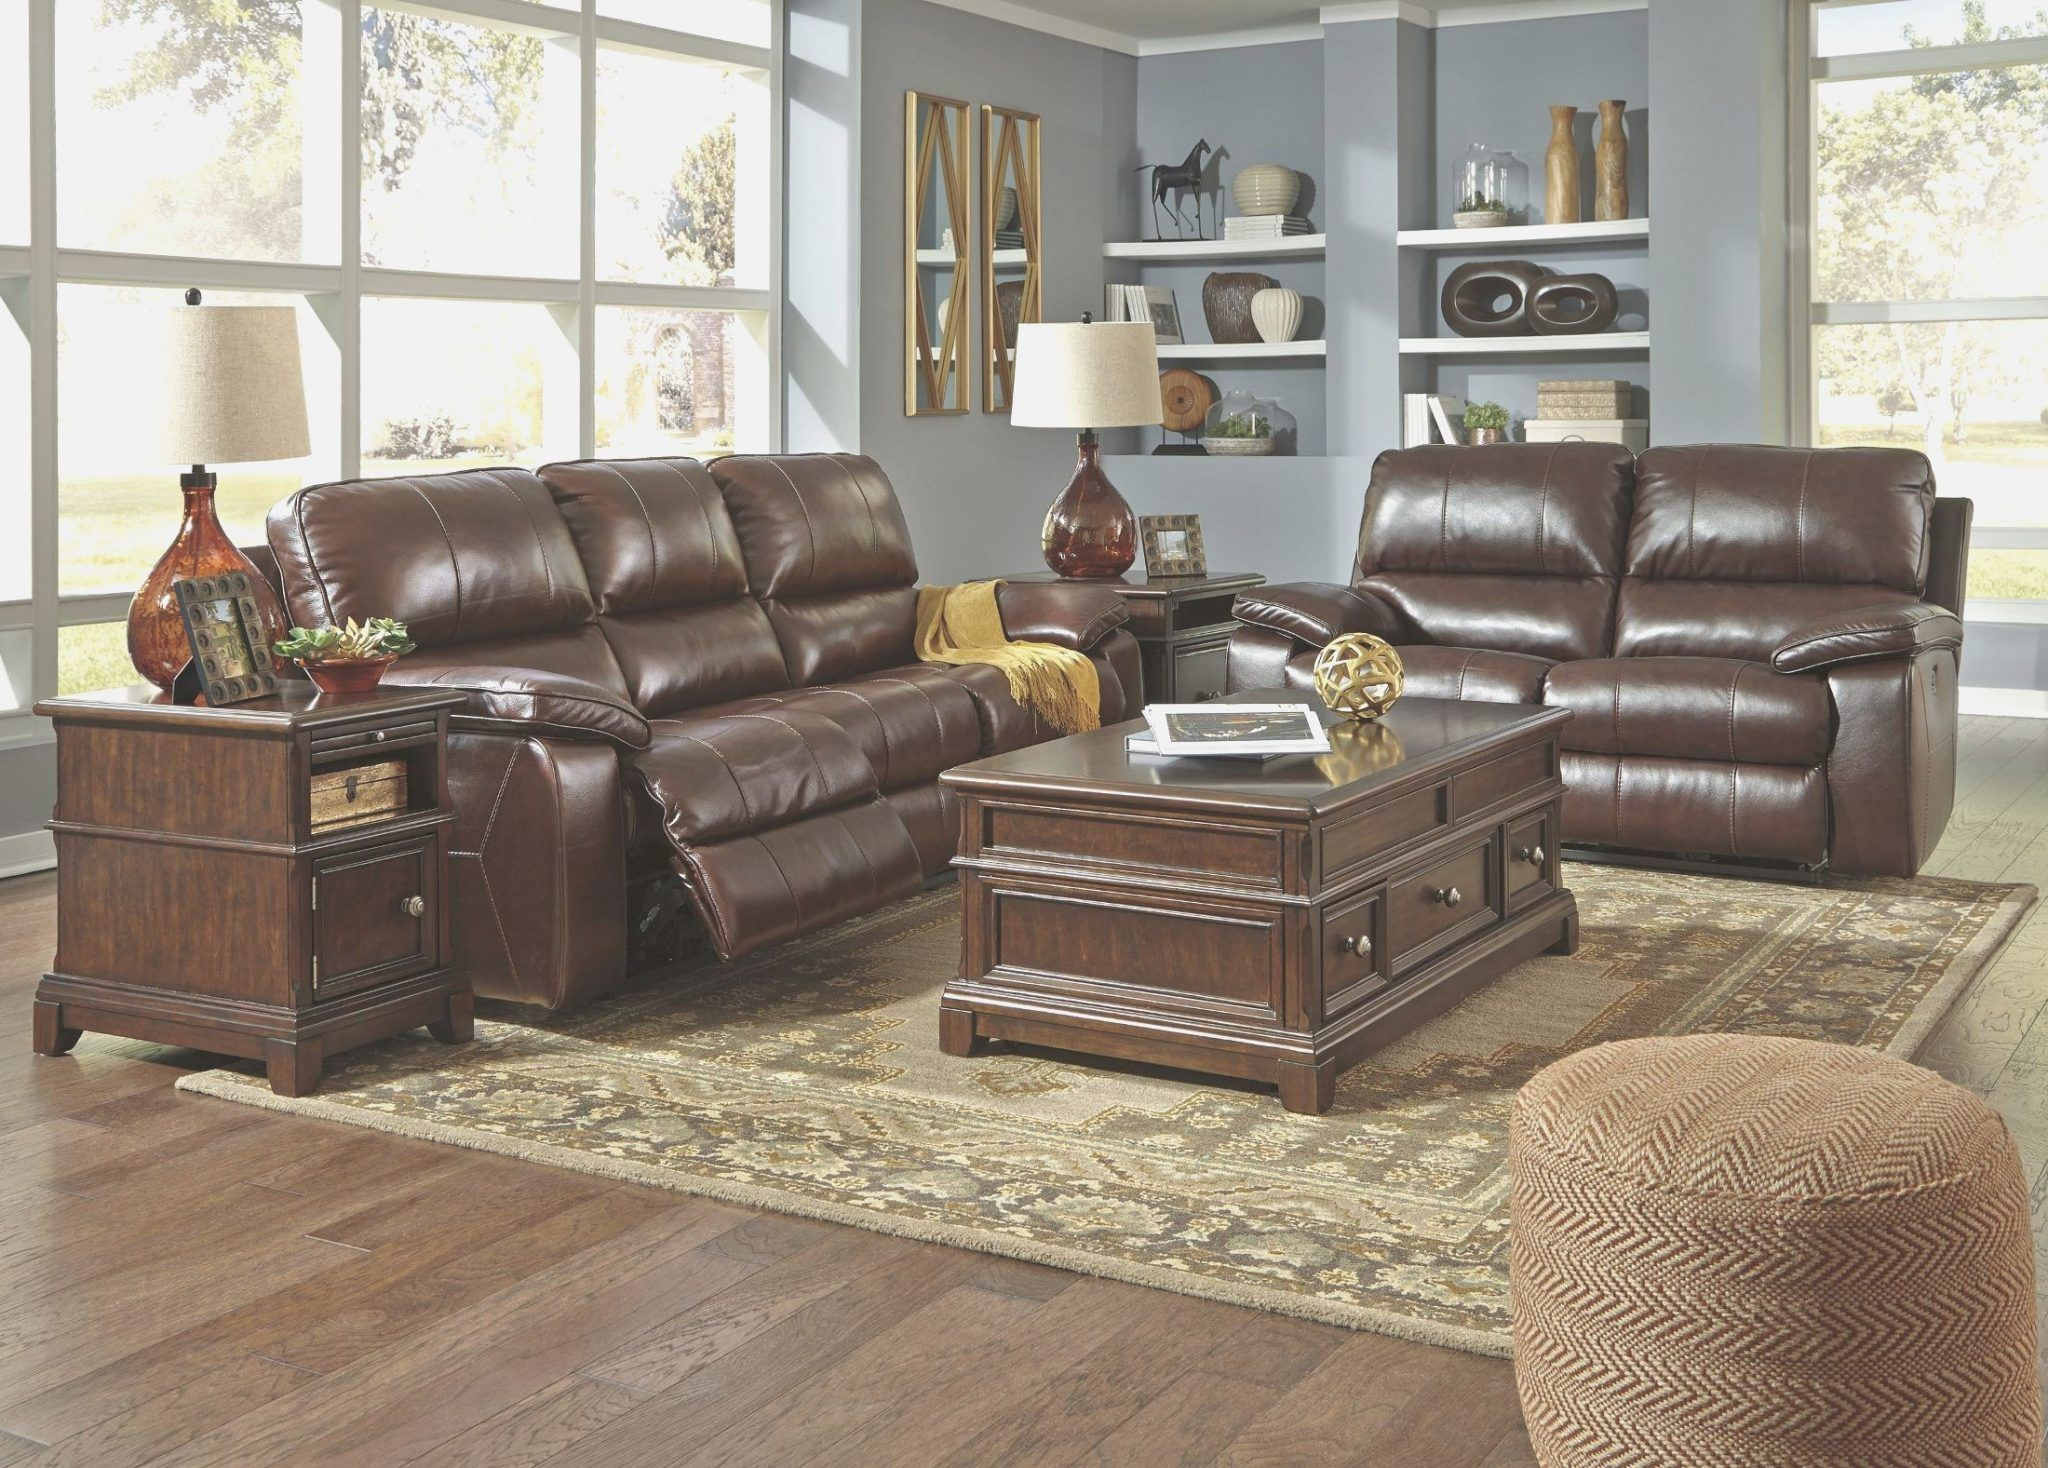 Sectional Sofas Rooms To Go Gray Sofa Gregory